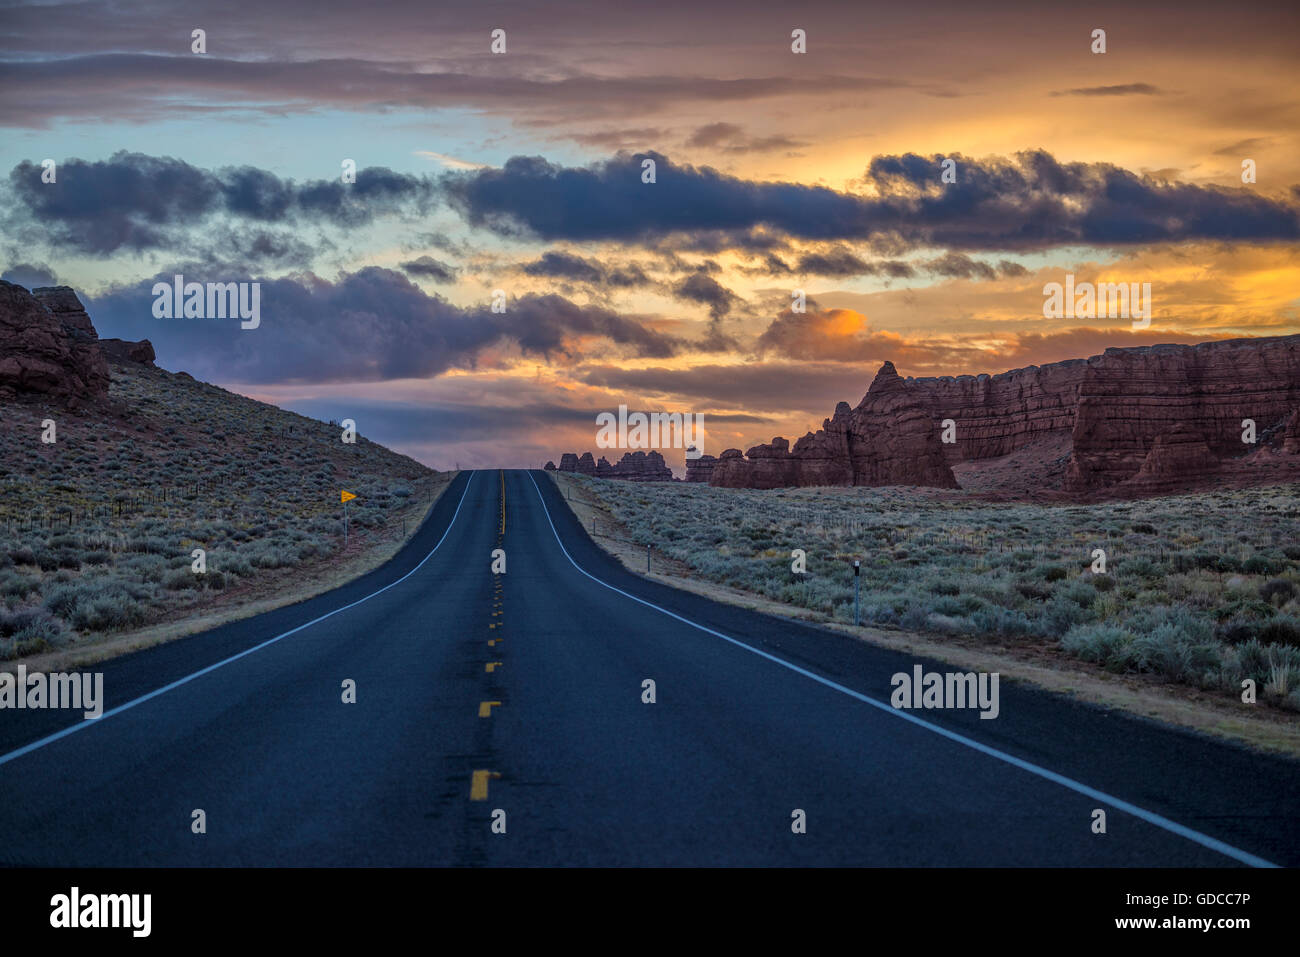 Utah Highway Nightscape - Stock Image